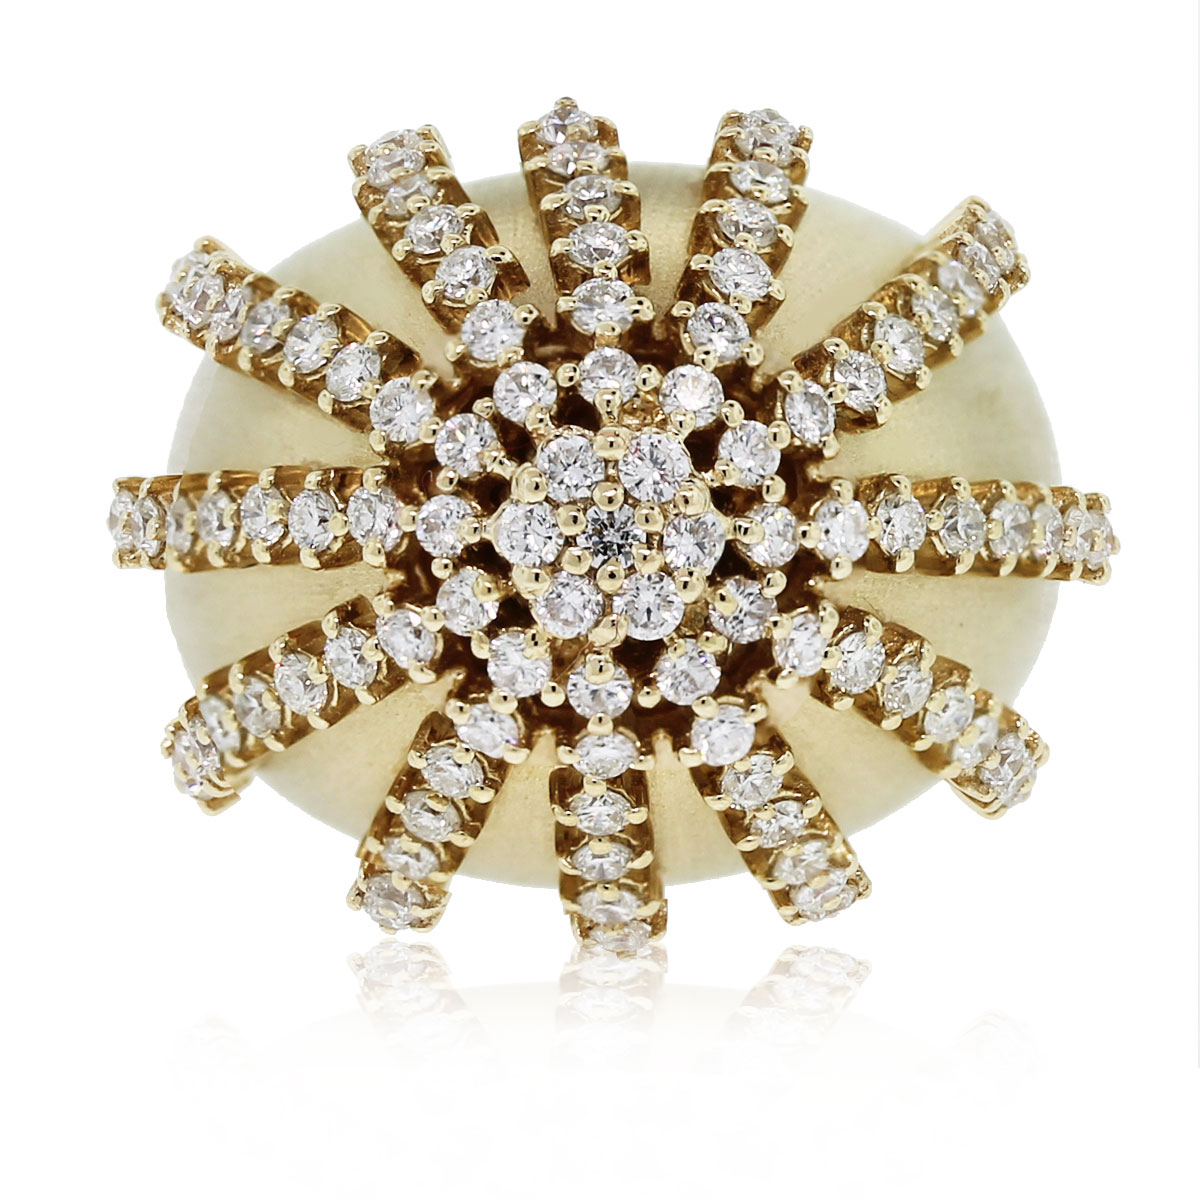 This 14kt Yellow Gold Satin Finish Diamond Starburst Ring is beautiful!